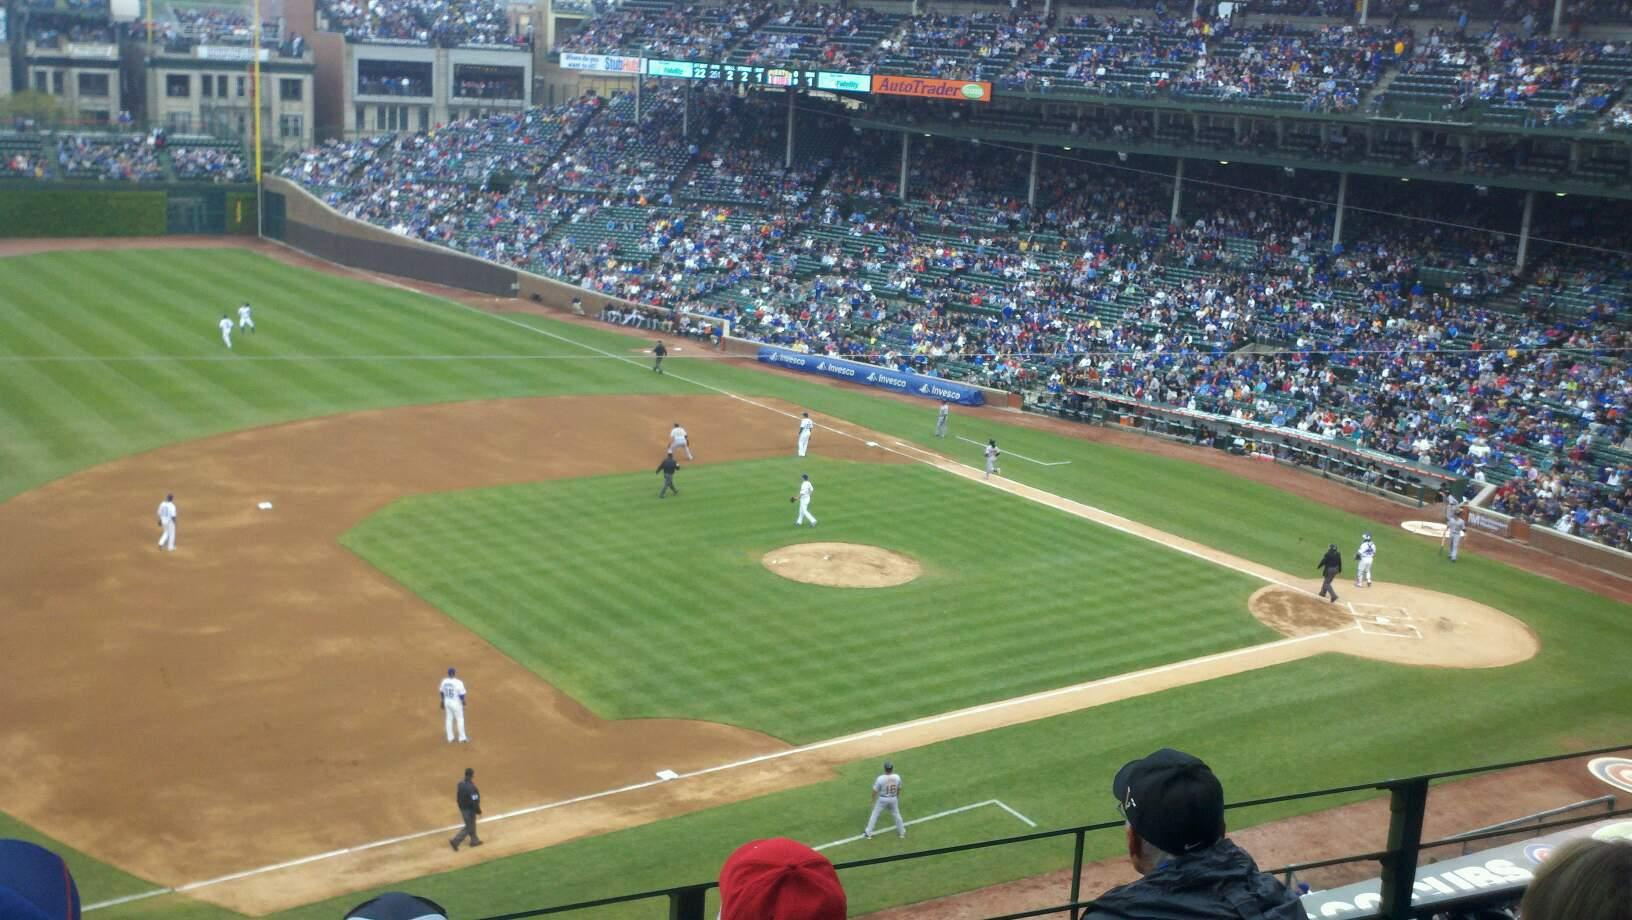 Wrigley Field Section 409 Row 4 Seat 11